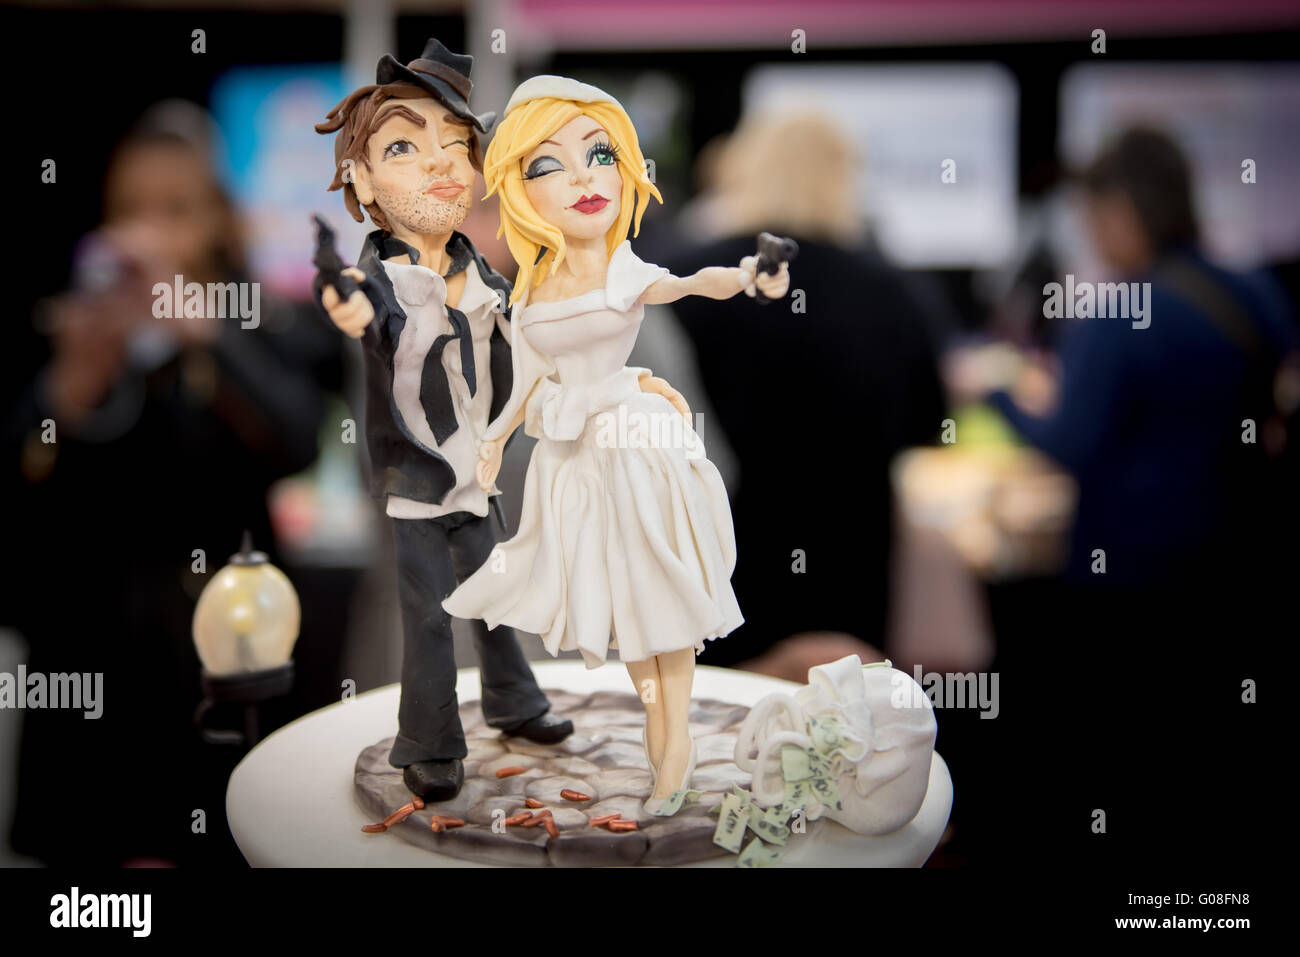 Bonnie And Clyde Stock Photos Bonnie And Clyde Stock Images Alamy